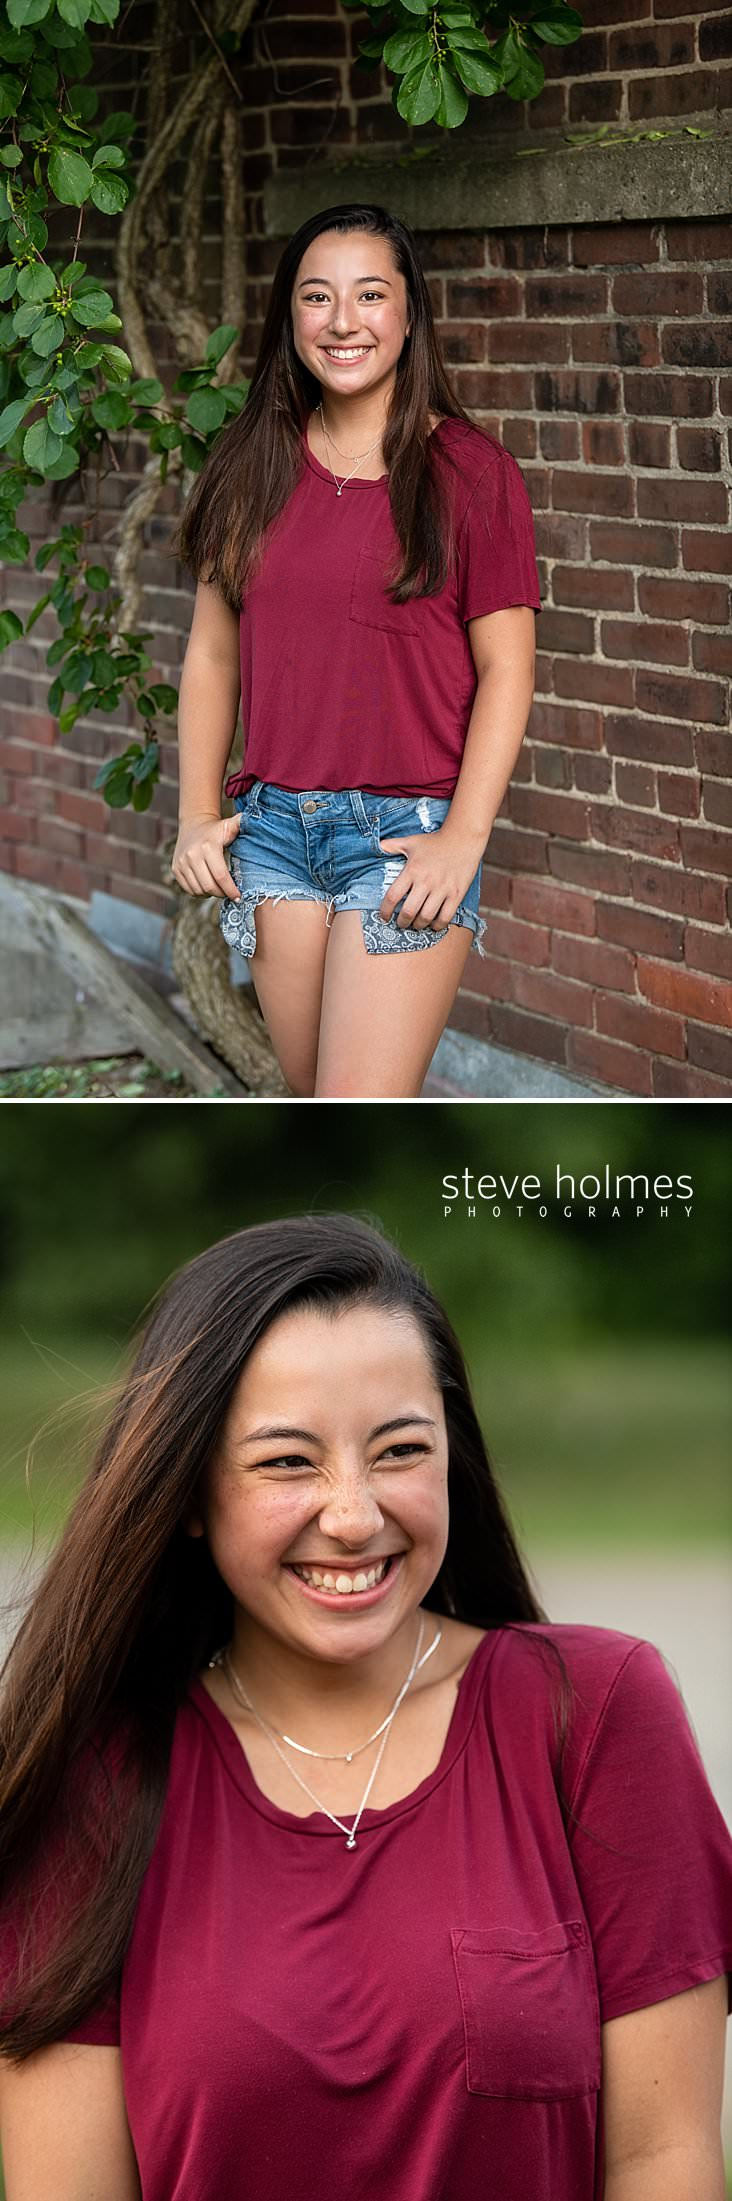 19_Teen girl in red tee shirt and jean shorts poses in front of brick wall and vines for outdoor senior portrait.jpg